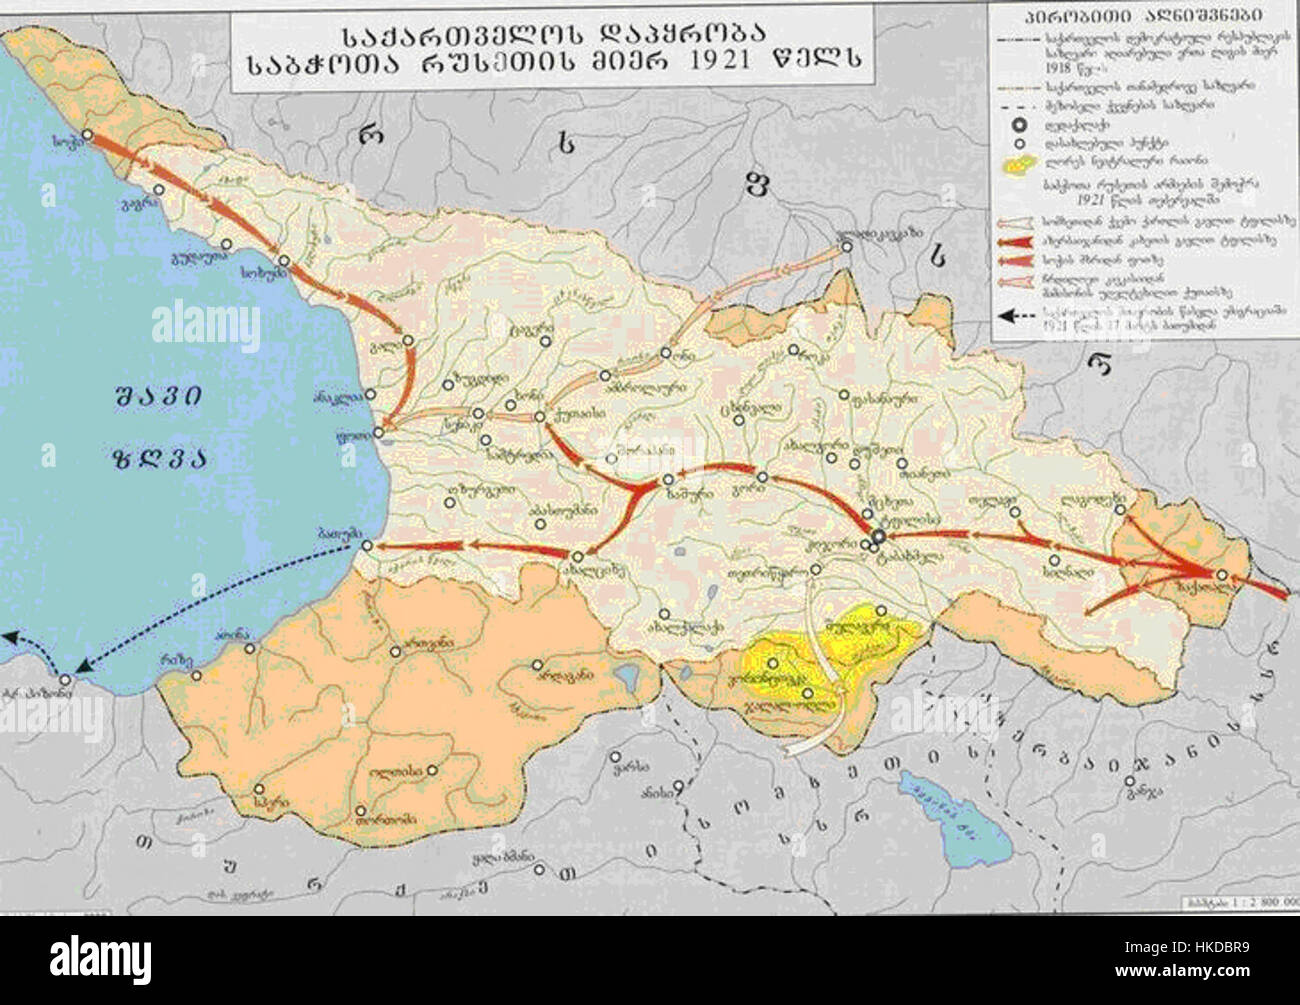 Territorial Losses Of Georgia After The Russian Red Army - Georgia map 1921